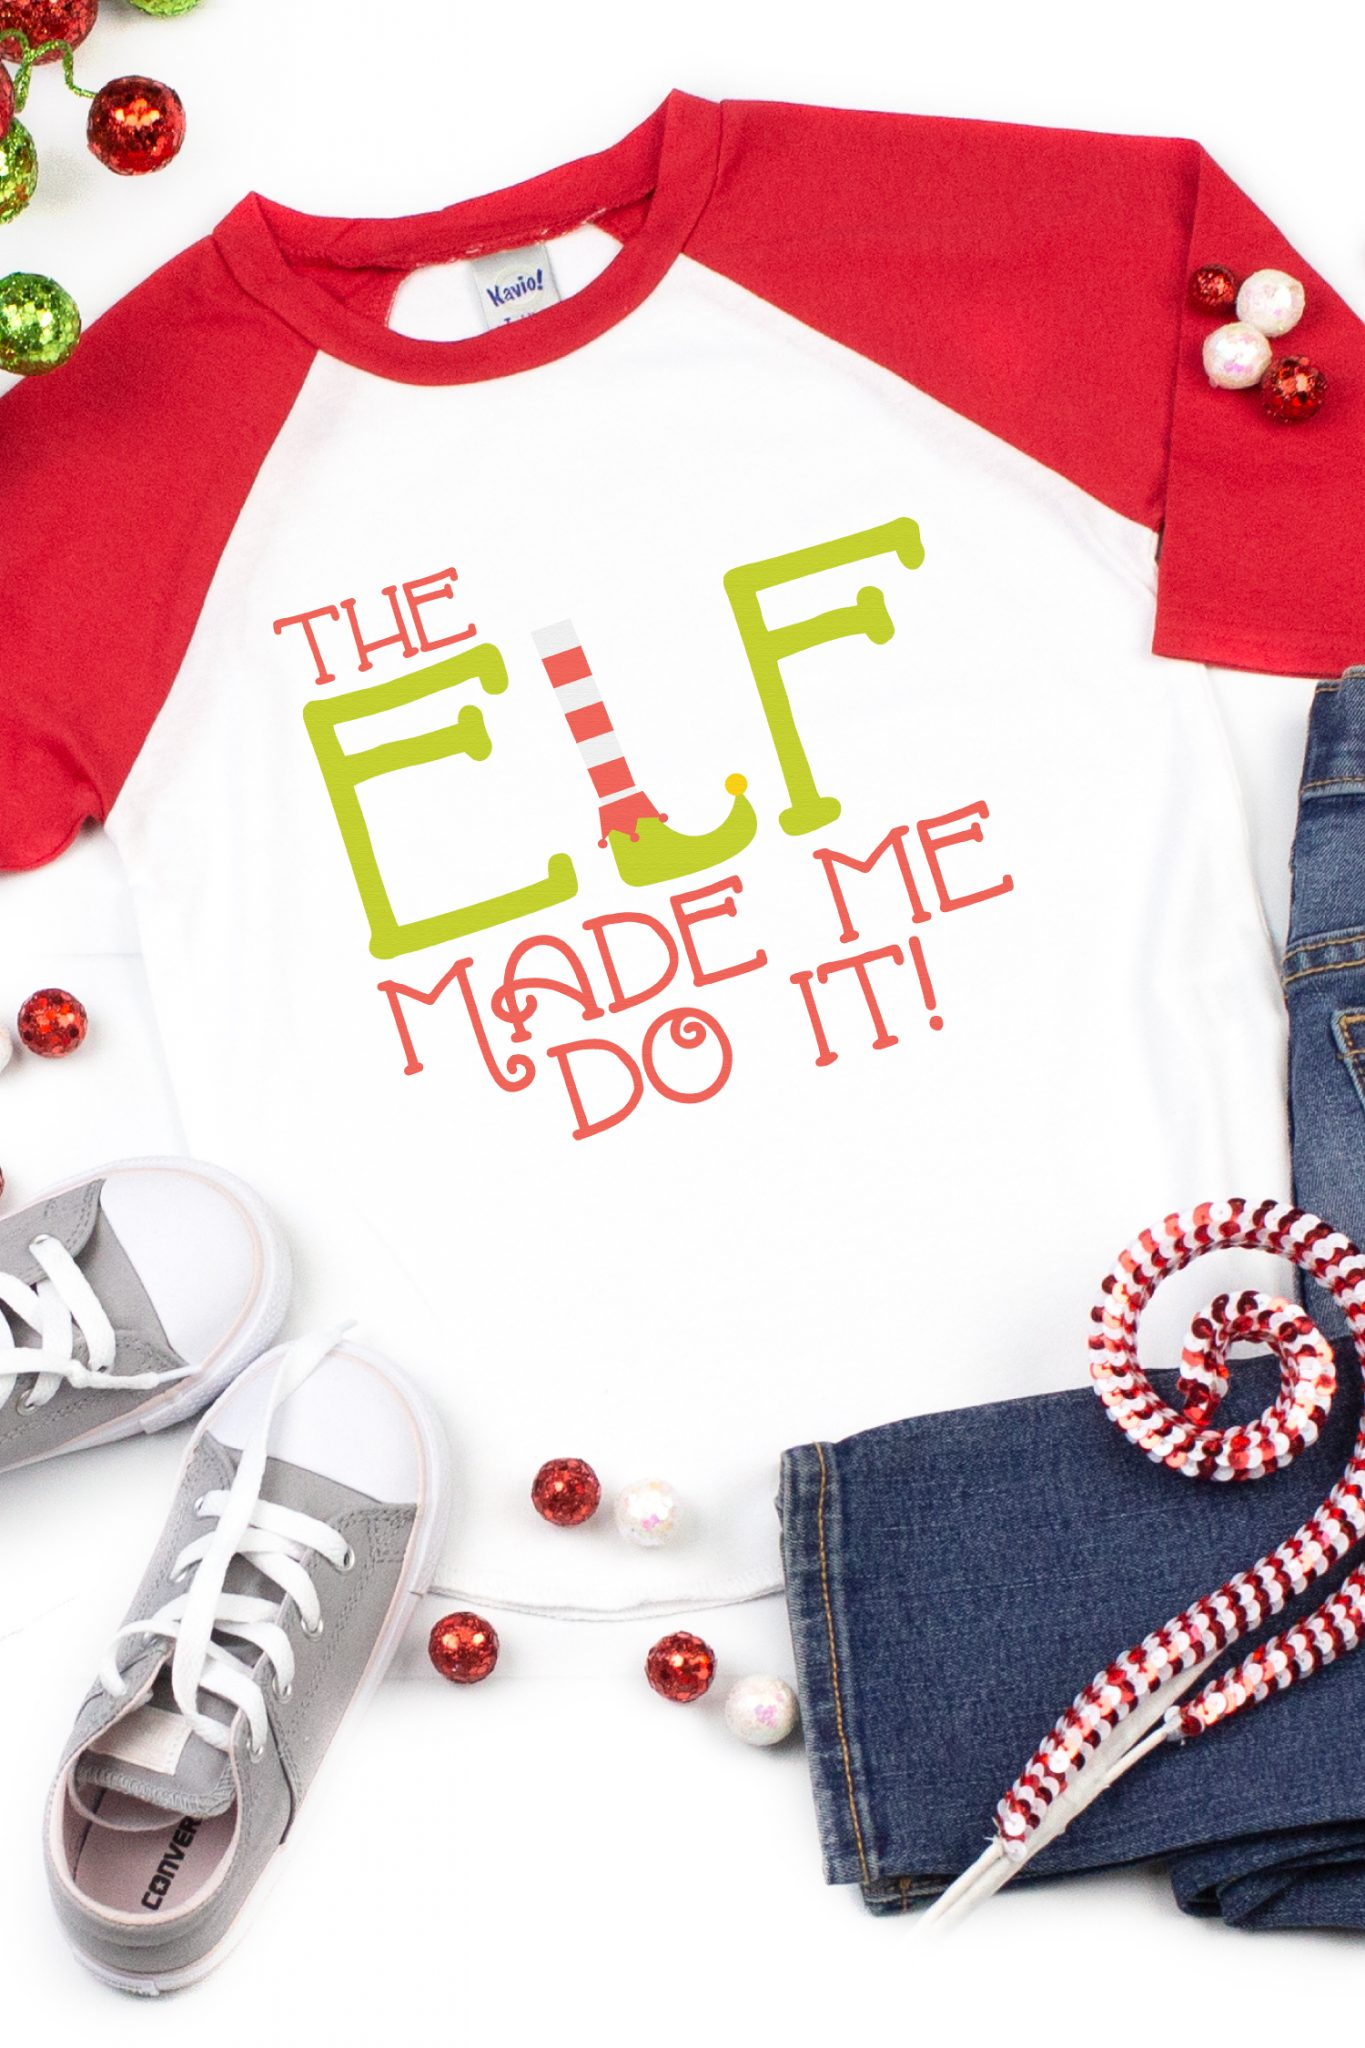 Everyone's favorite little Christmas friend is back. Bring the elf to life with this Elf SVG bundle. Create elf-inspired pj's, gift tags and fun crafts!